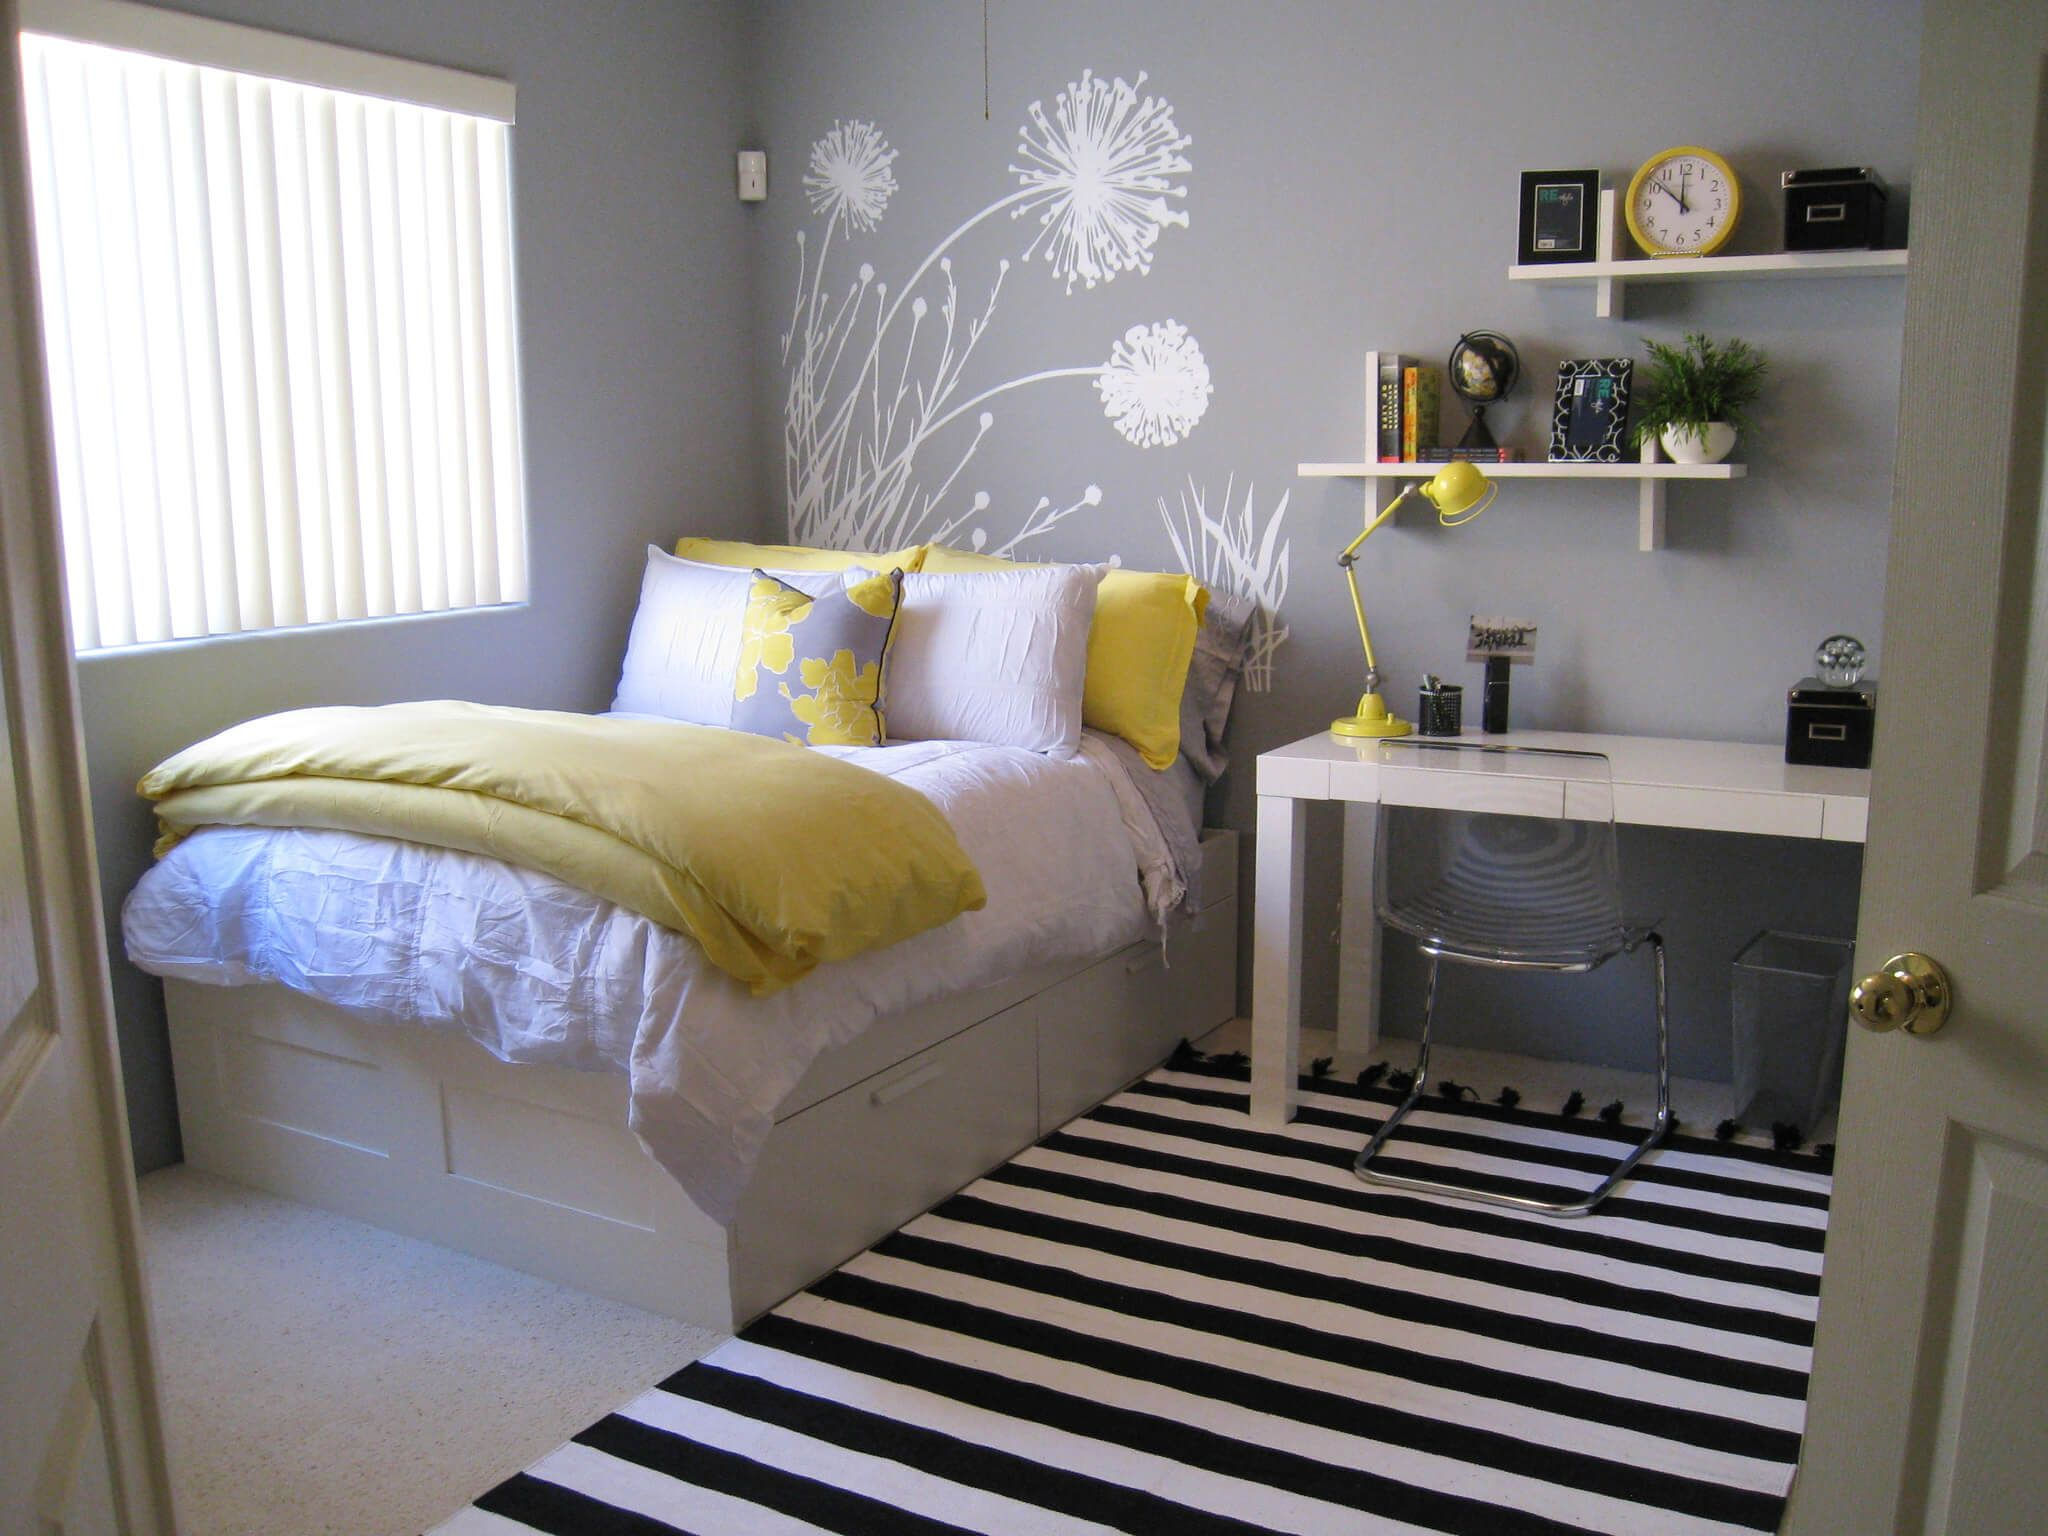 45 inspiring small bedrooms ideas for decorating